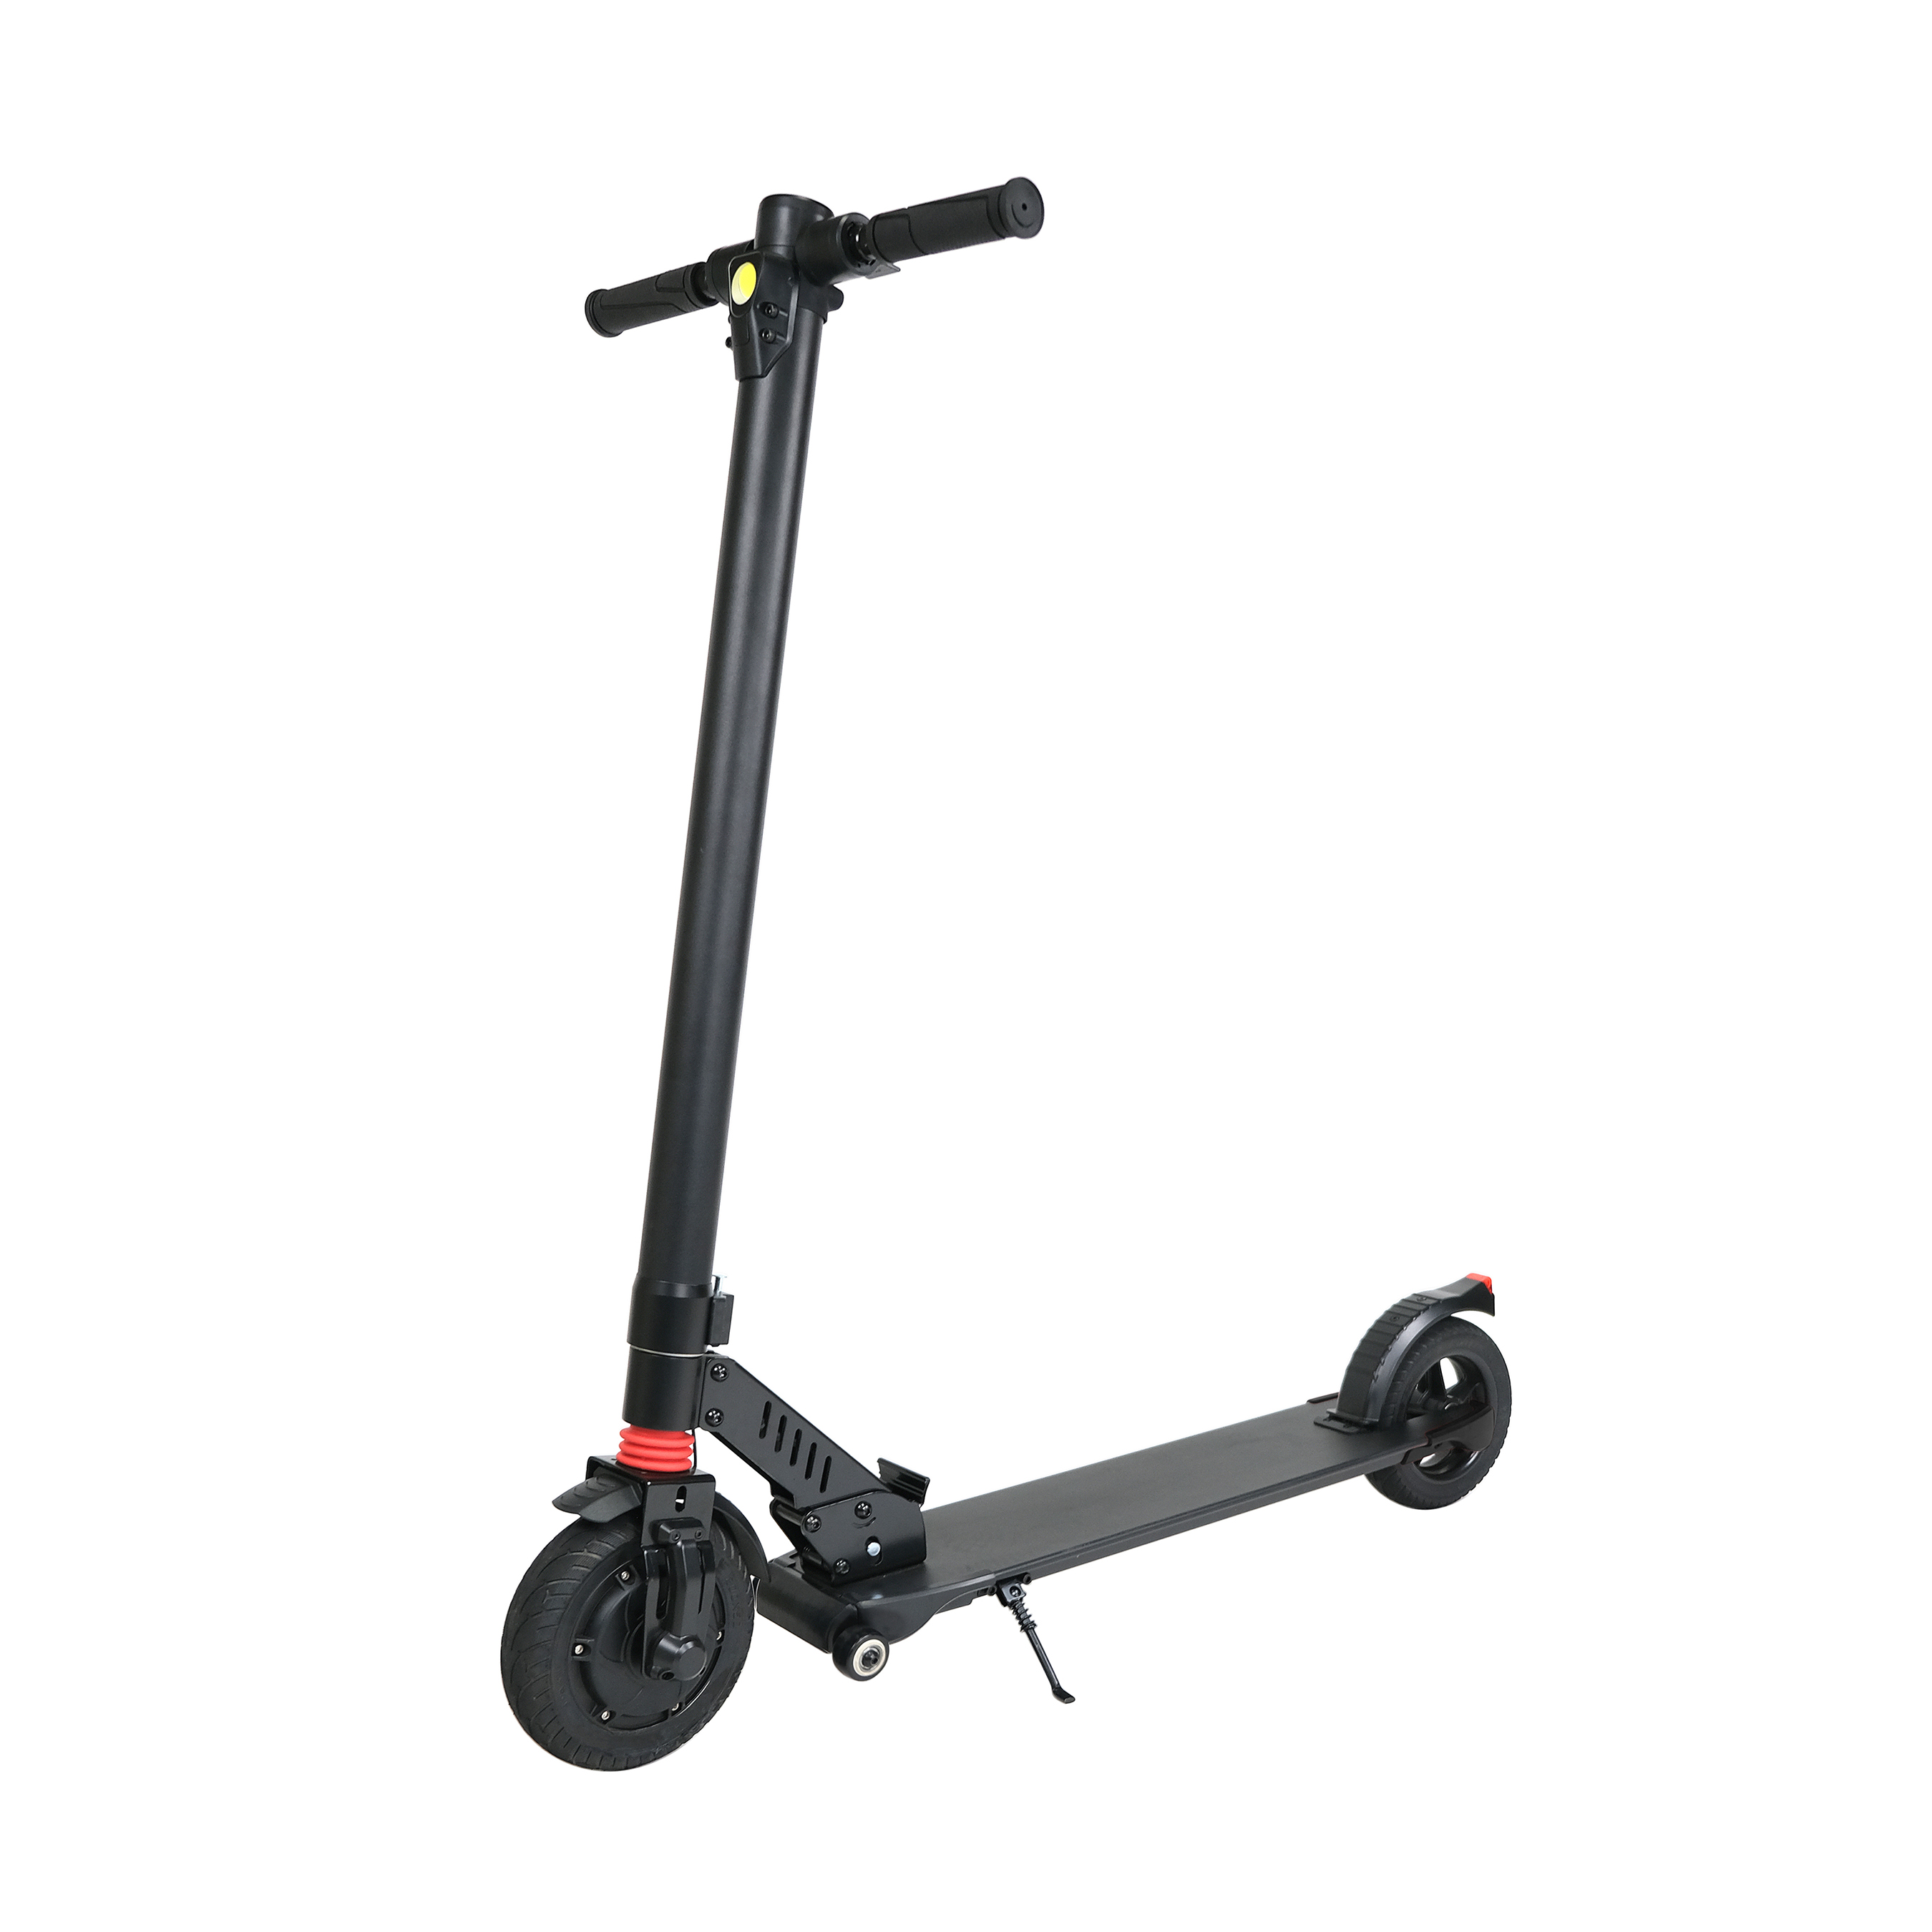 36V 400w about 9.6-25KM/h Range Alloy+ABS+PC Foldable Electric Scooter